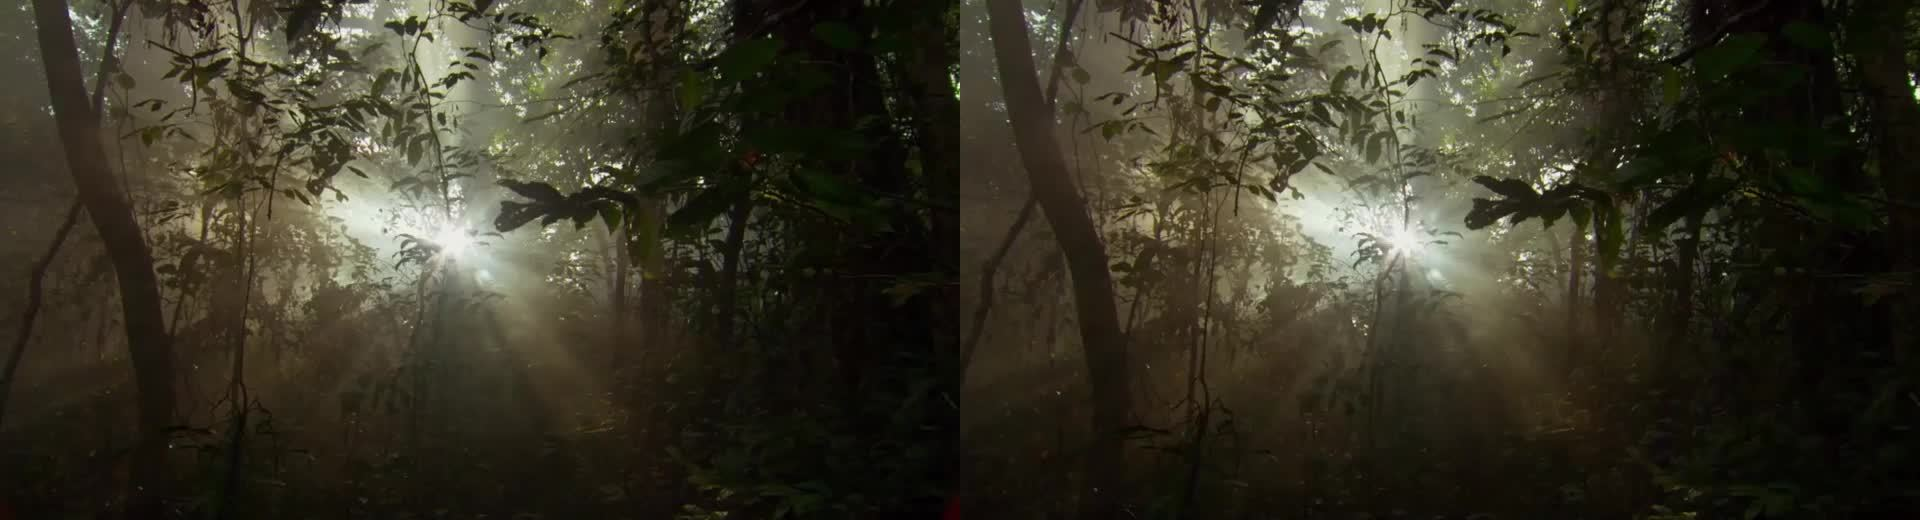 africa, crossview, Africa -  S1E3, 1:21 (Crossview Conversion) GIFs